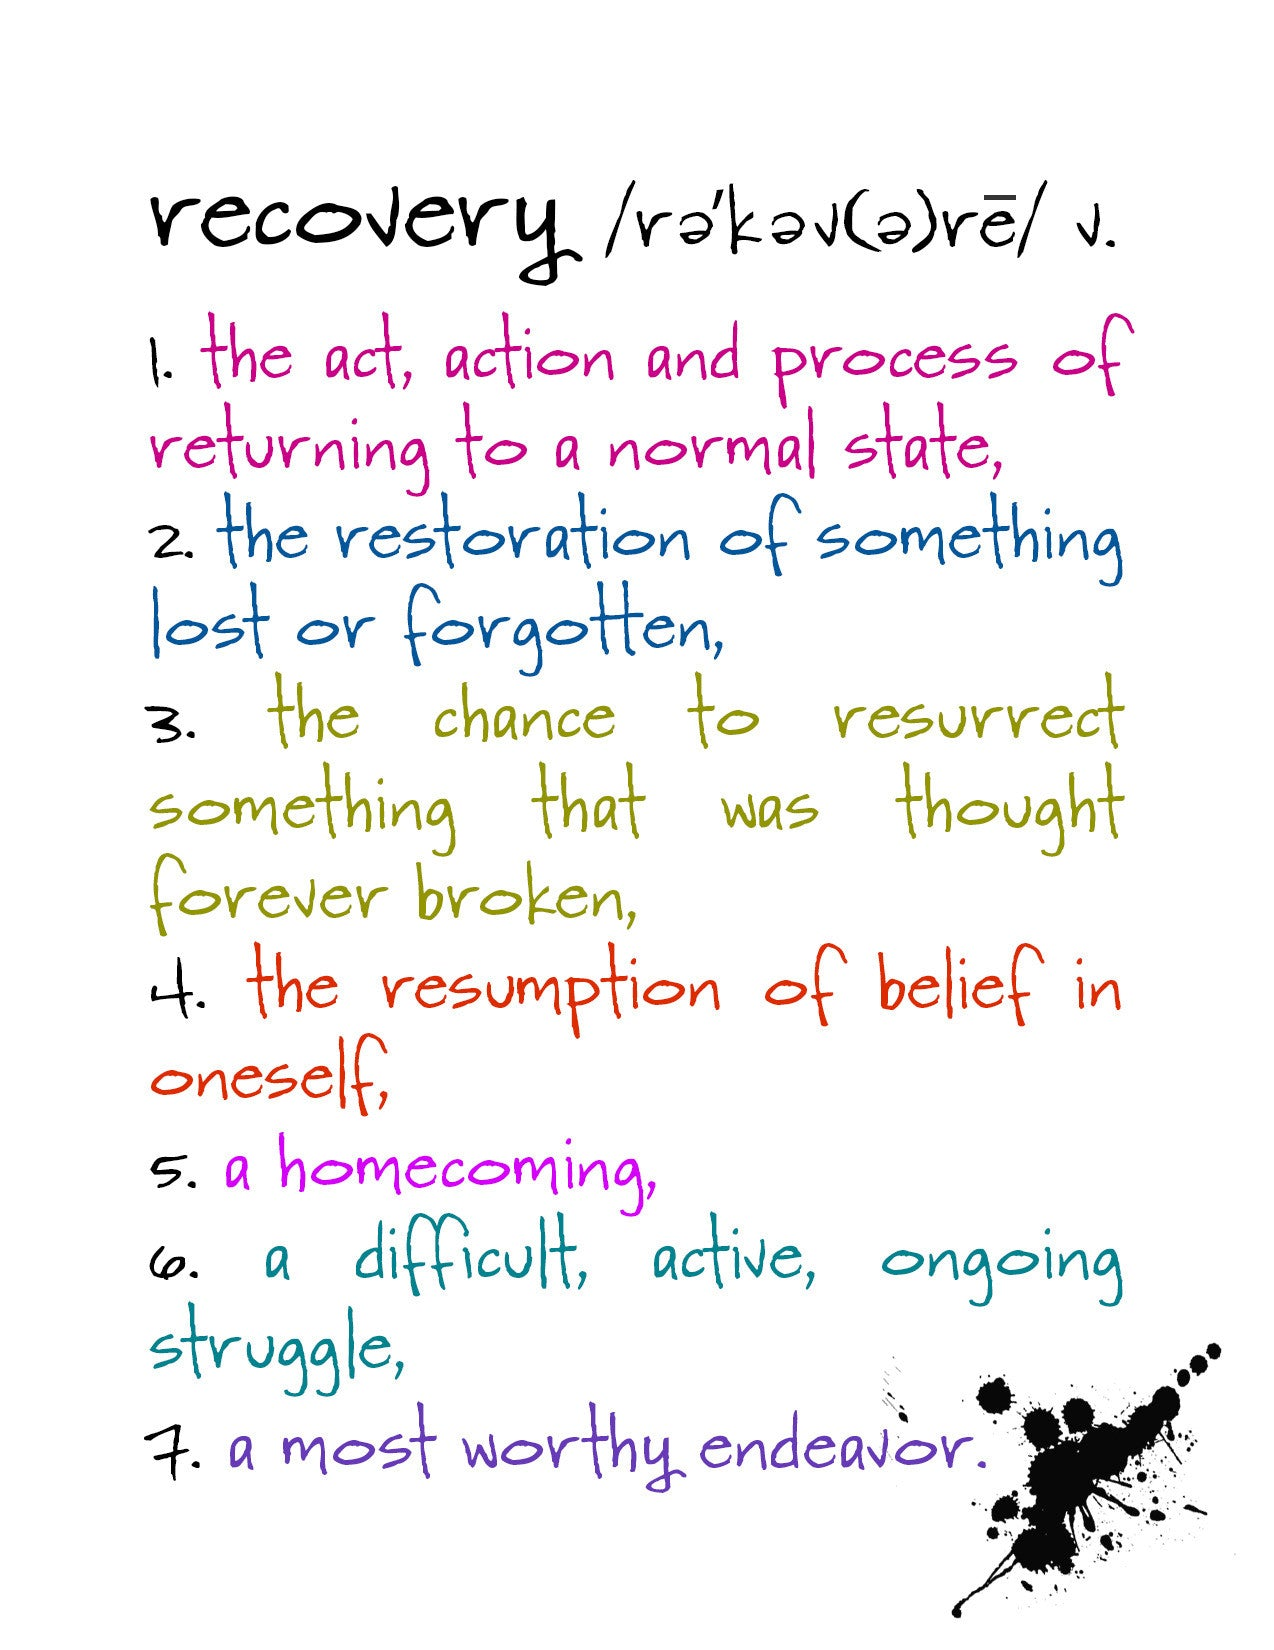 Recovery an encouragement and support card kat mariaca studio recovery an encouragement and support greeting card katmariacastudio 4 m4hsunfo